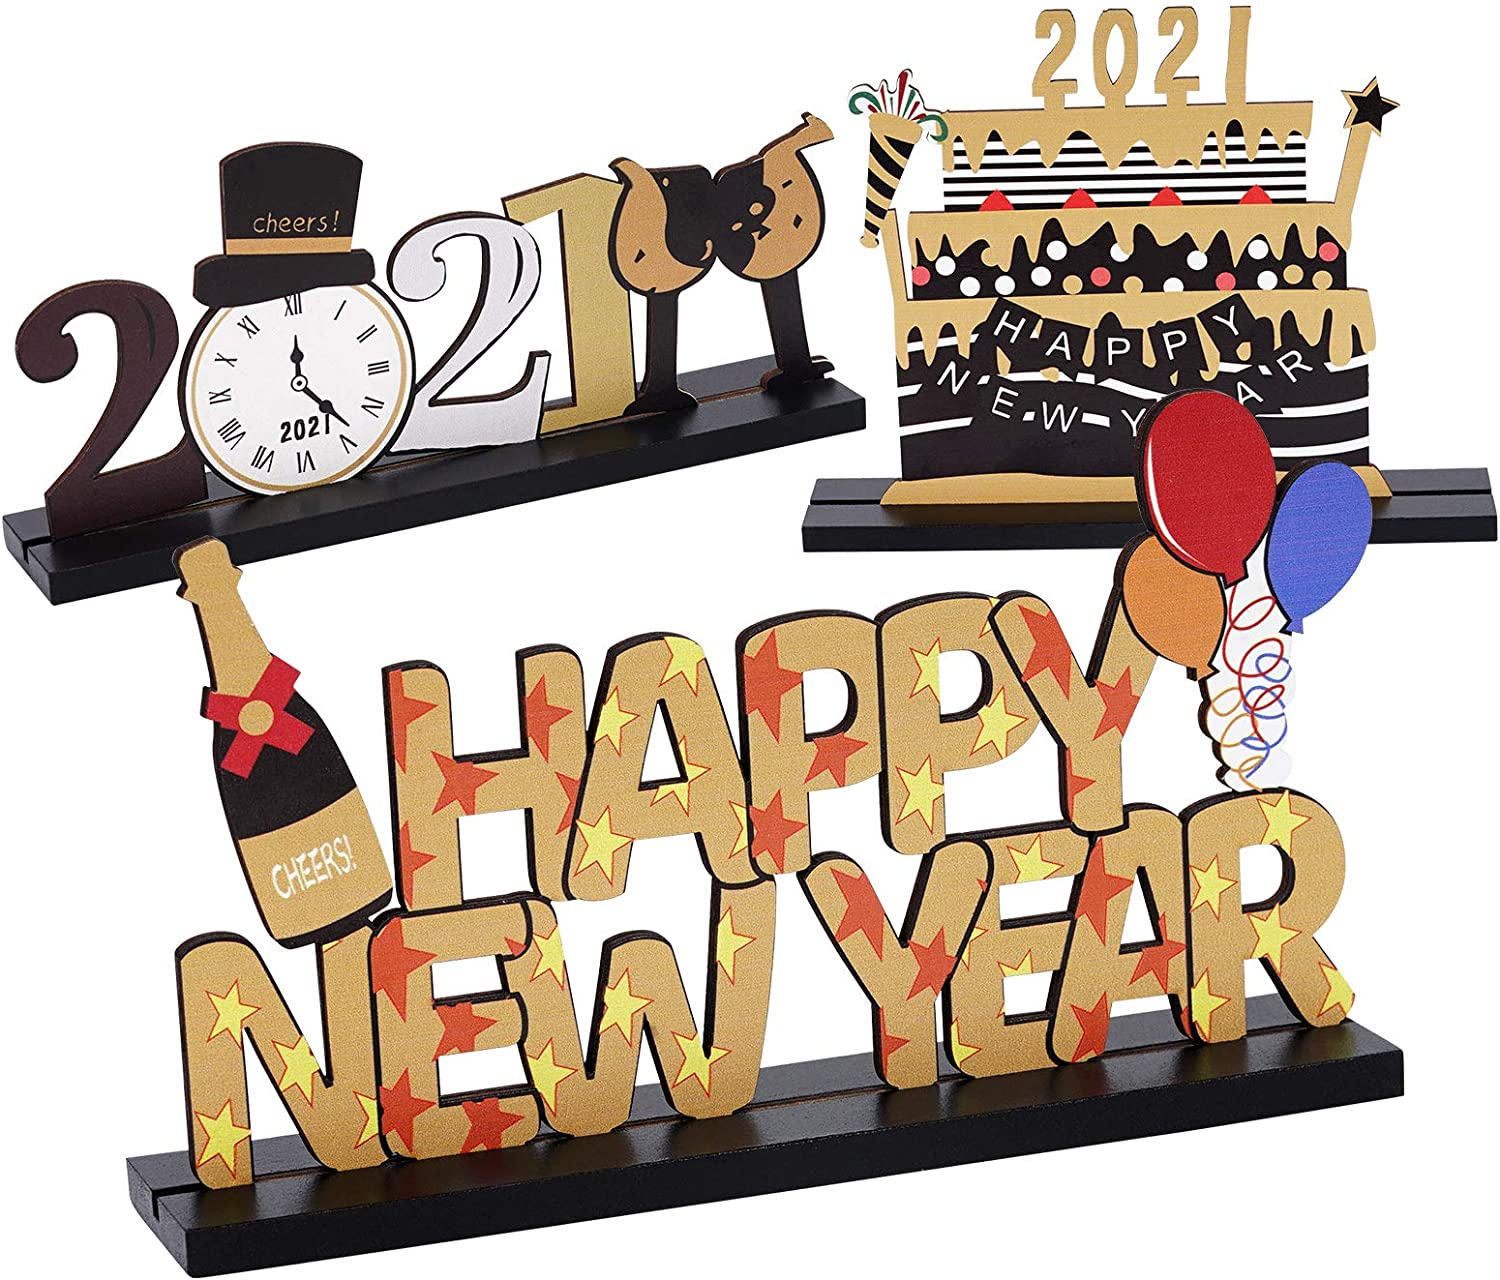 3 Pcs Happy New Year Wooden Table Decorations GIGIK 2021 Happy New Year Centerpiece Sign For Coffee Table Topper Dinner Party, Holiday Presents New Year Decors